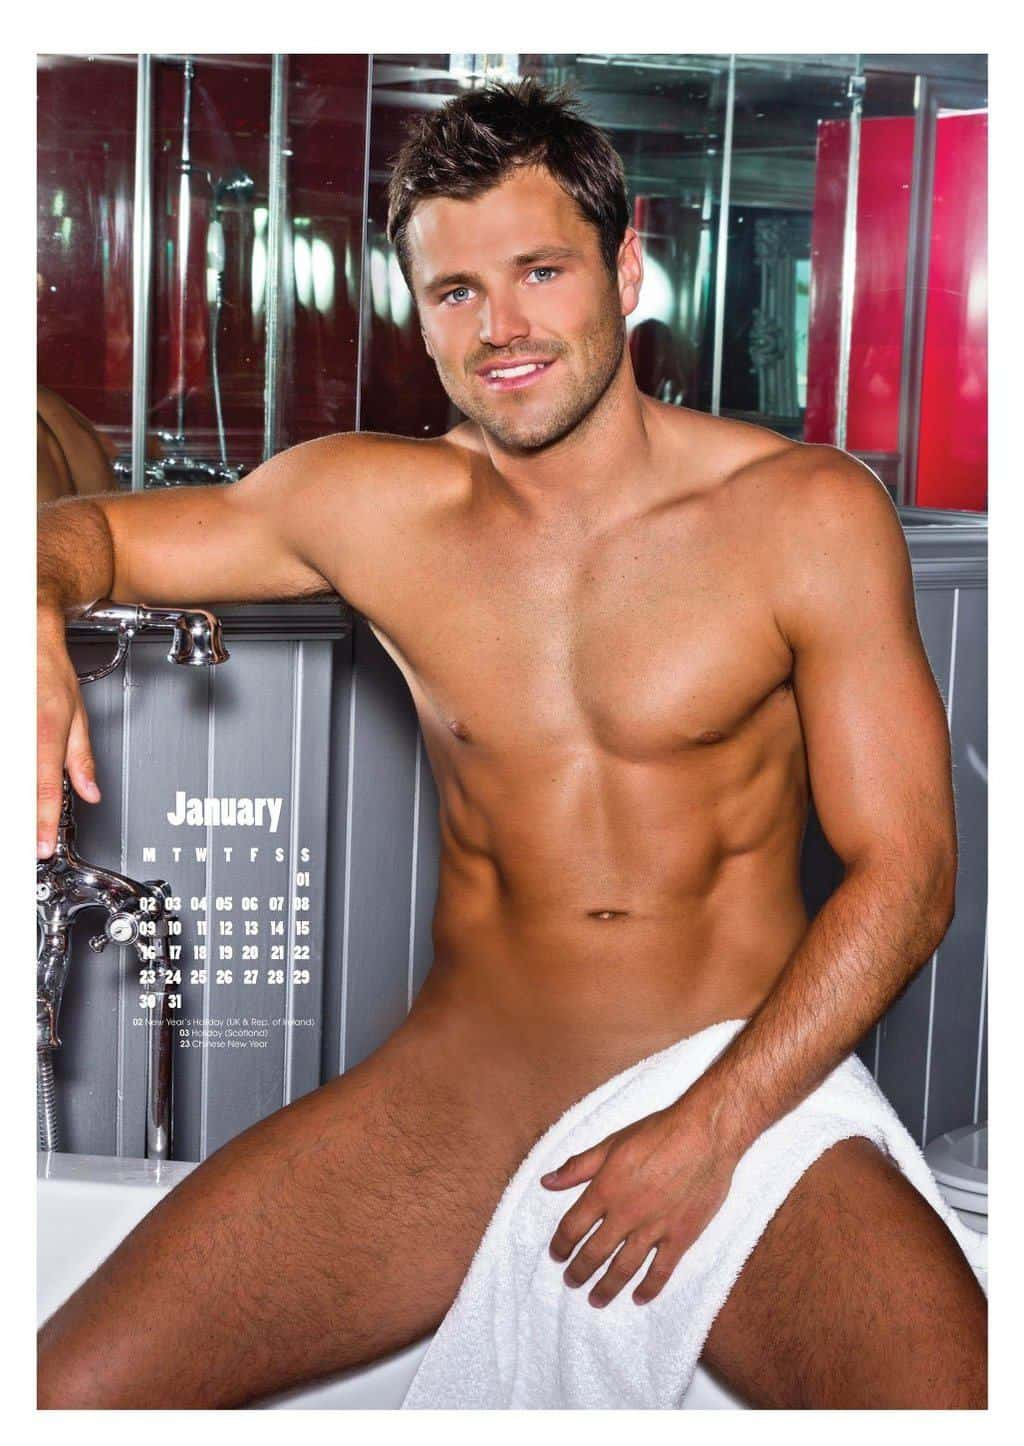 Mark Wright Shirtless Calendar Pic image